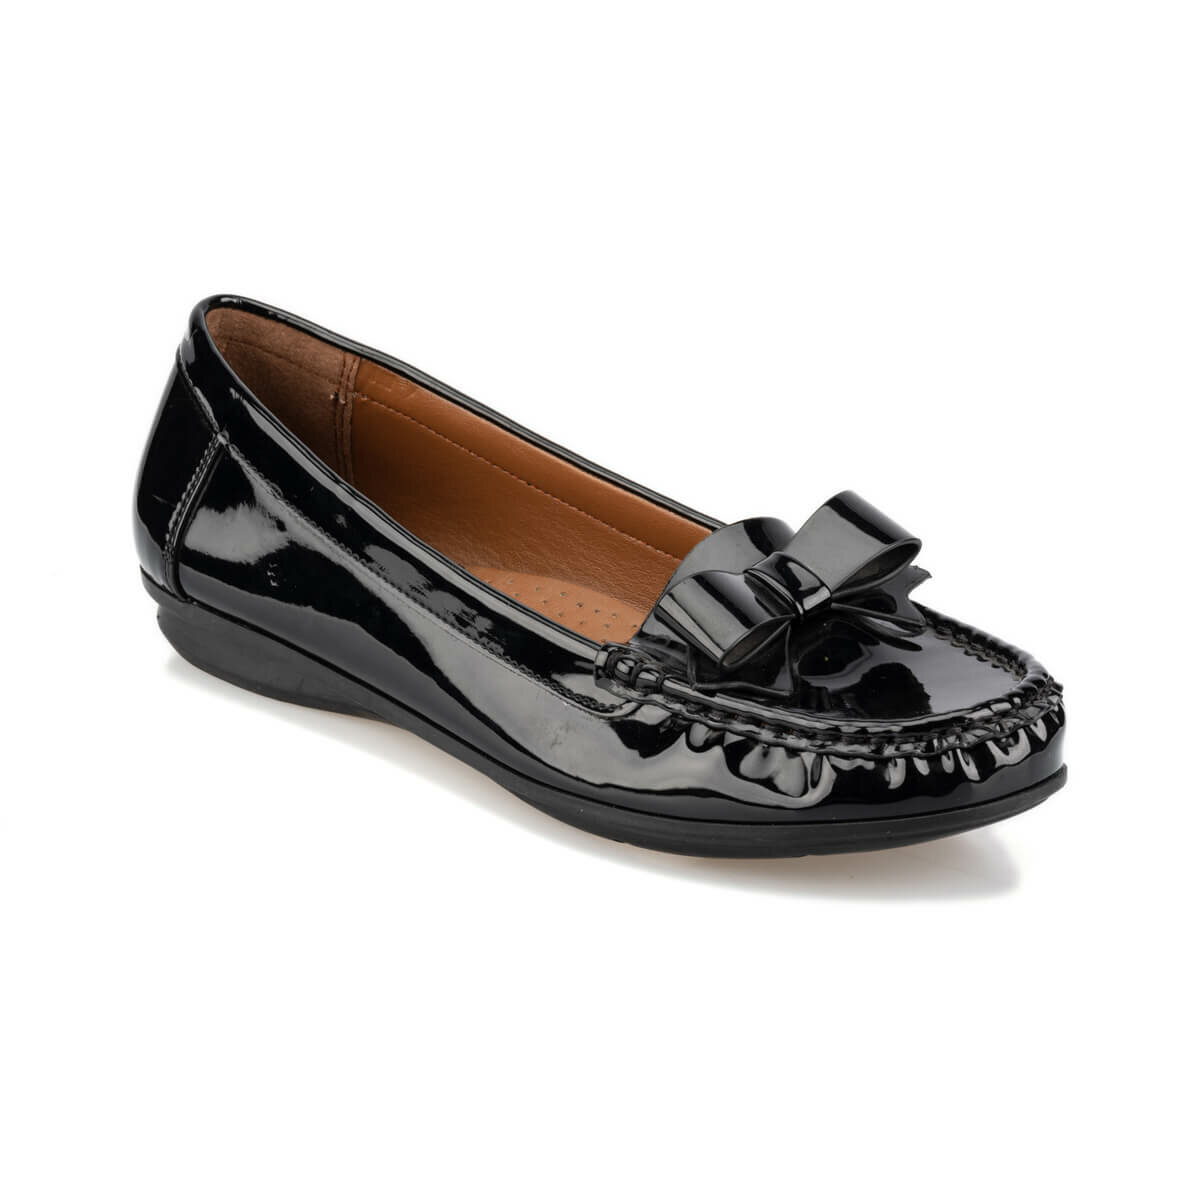 FLO 92.156009.Z Black Women Loafer Shoes Polaris